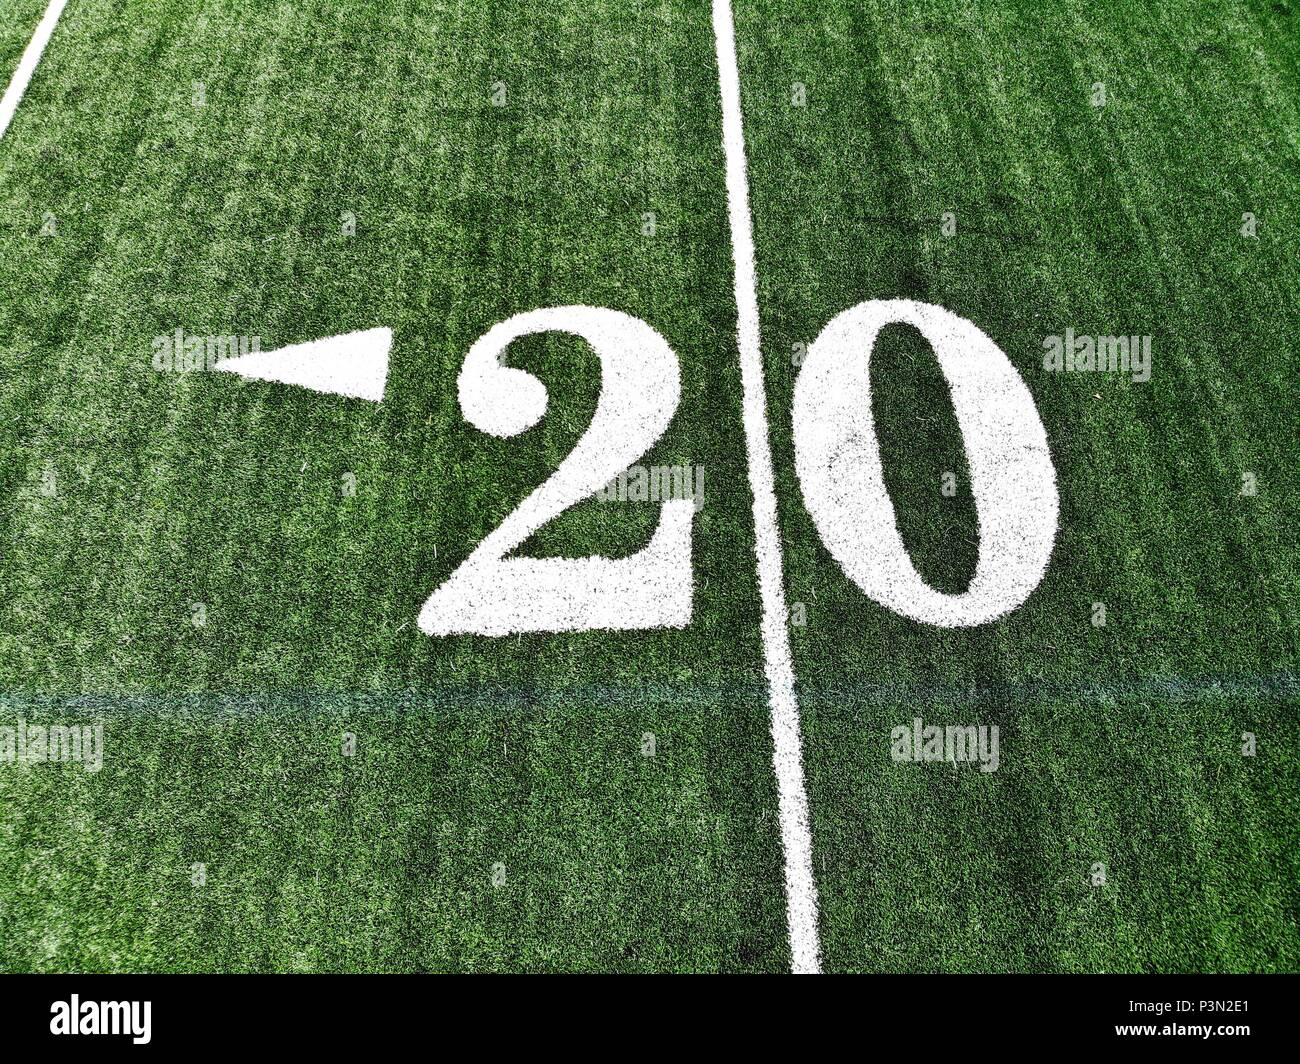 20 yard chalk mark on an green American football field taken from an aerial drone - Stock Image